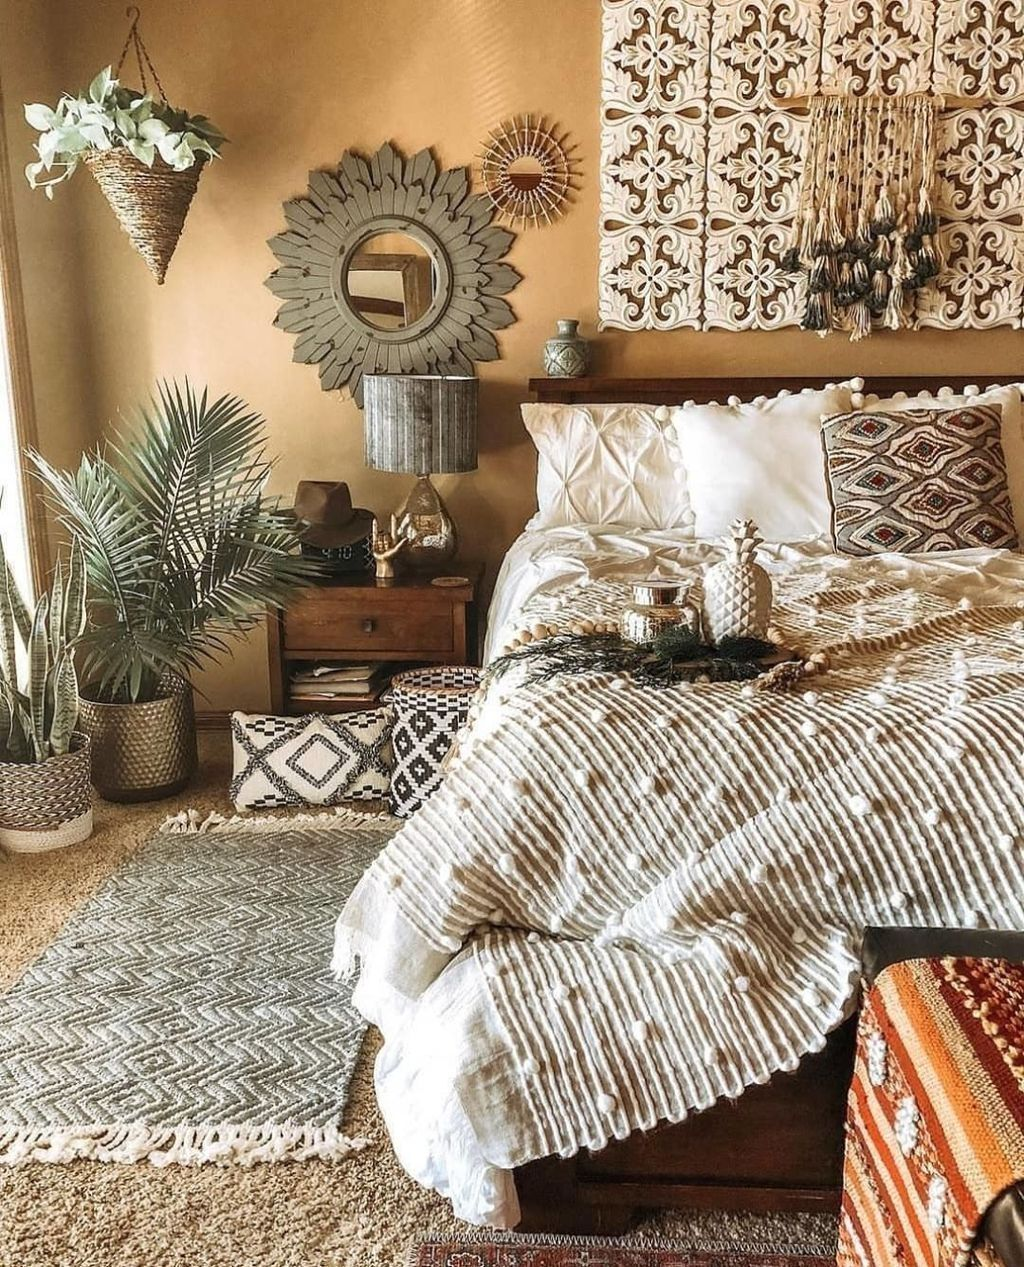 Rustic Bedroom Ideas If You Wish To Go To Rest In Rustic Chic Then This Article Is Perfect For You We Have Rustic Bedroom Bedroom Design Home Decor Bedroom